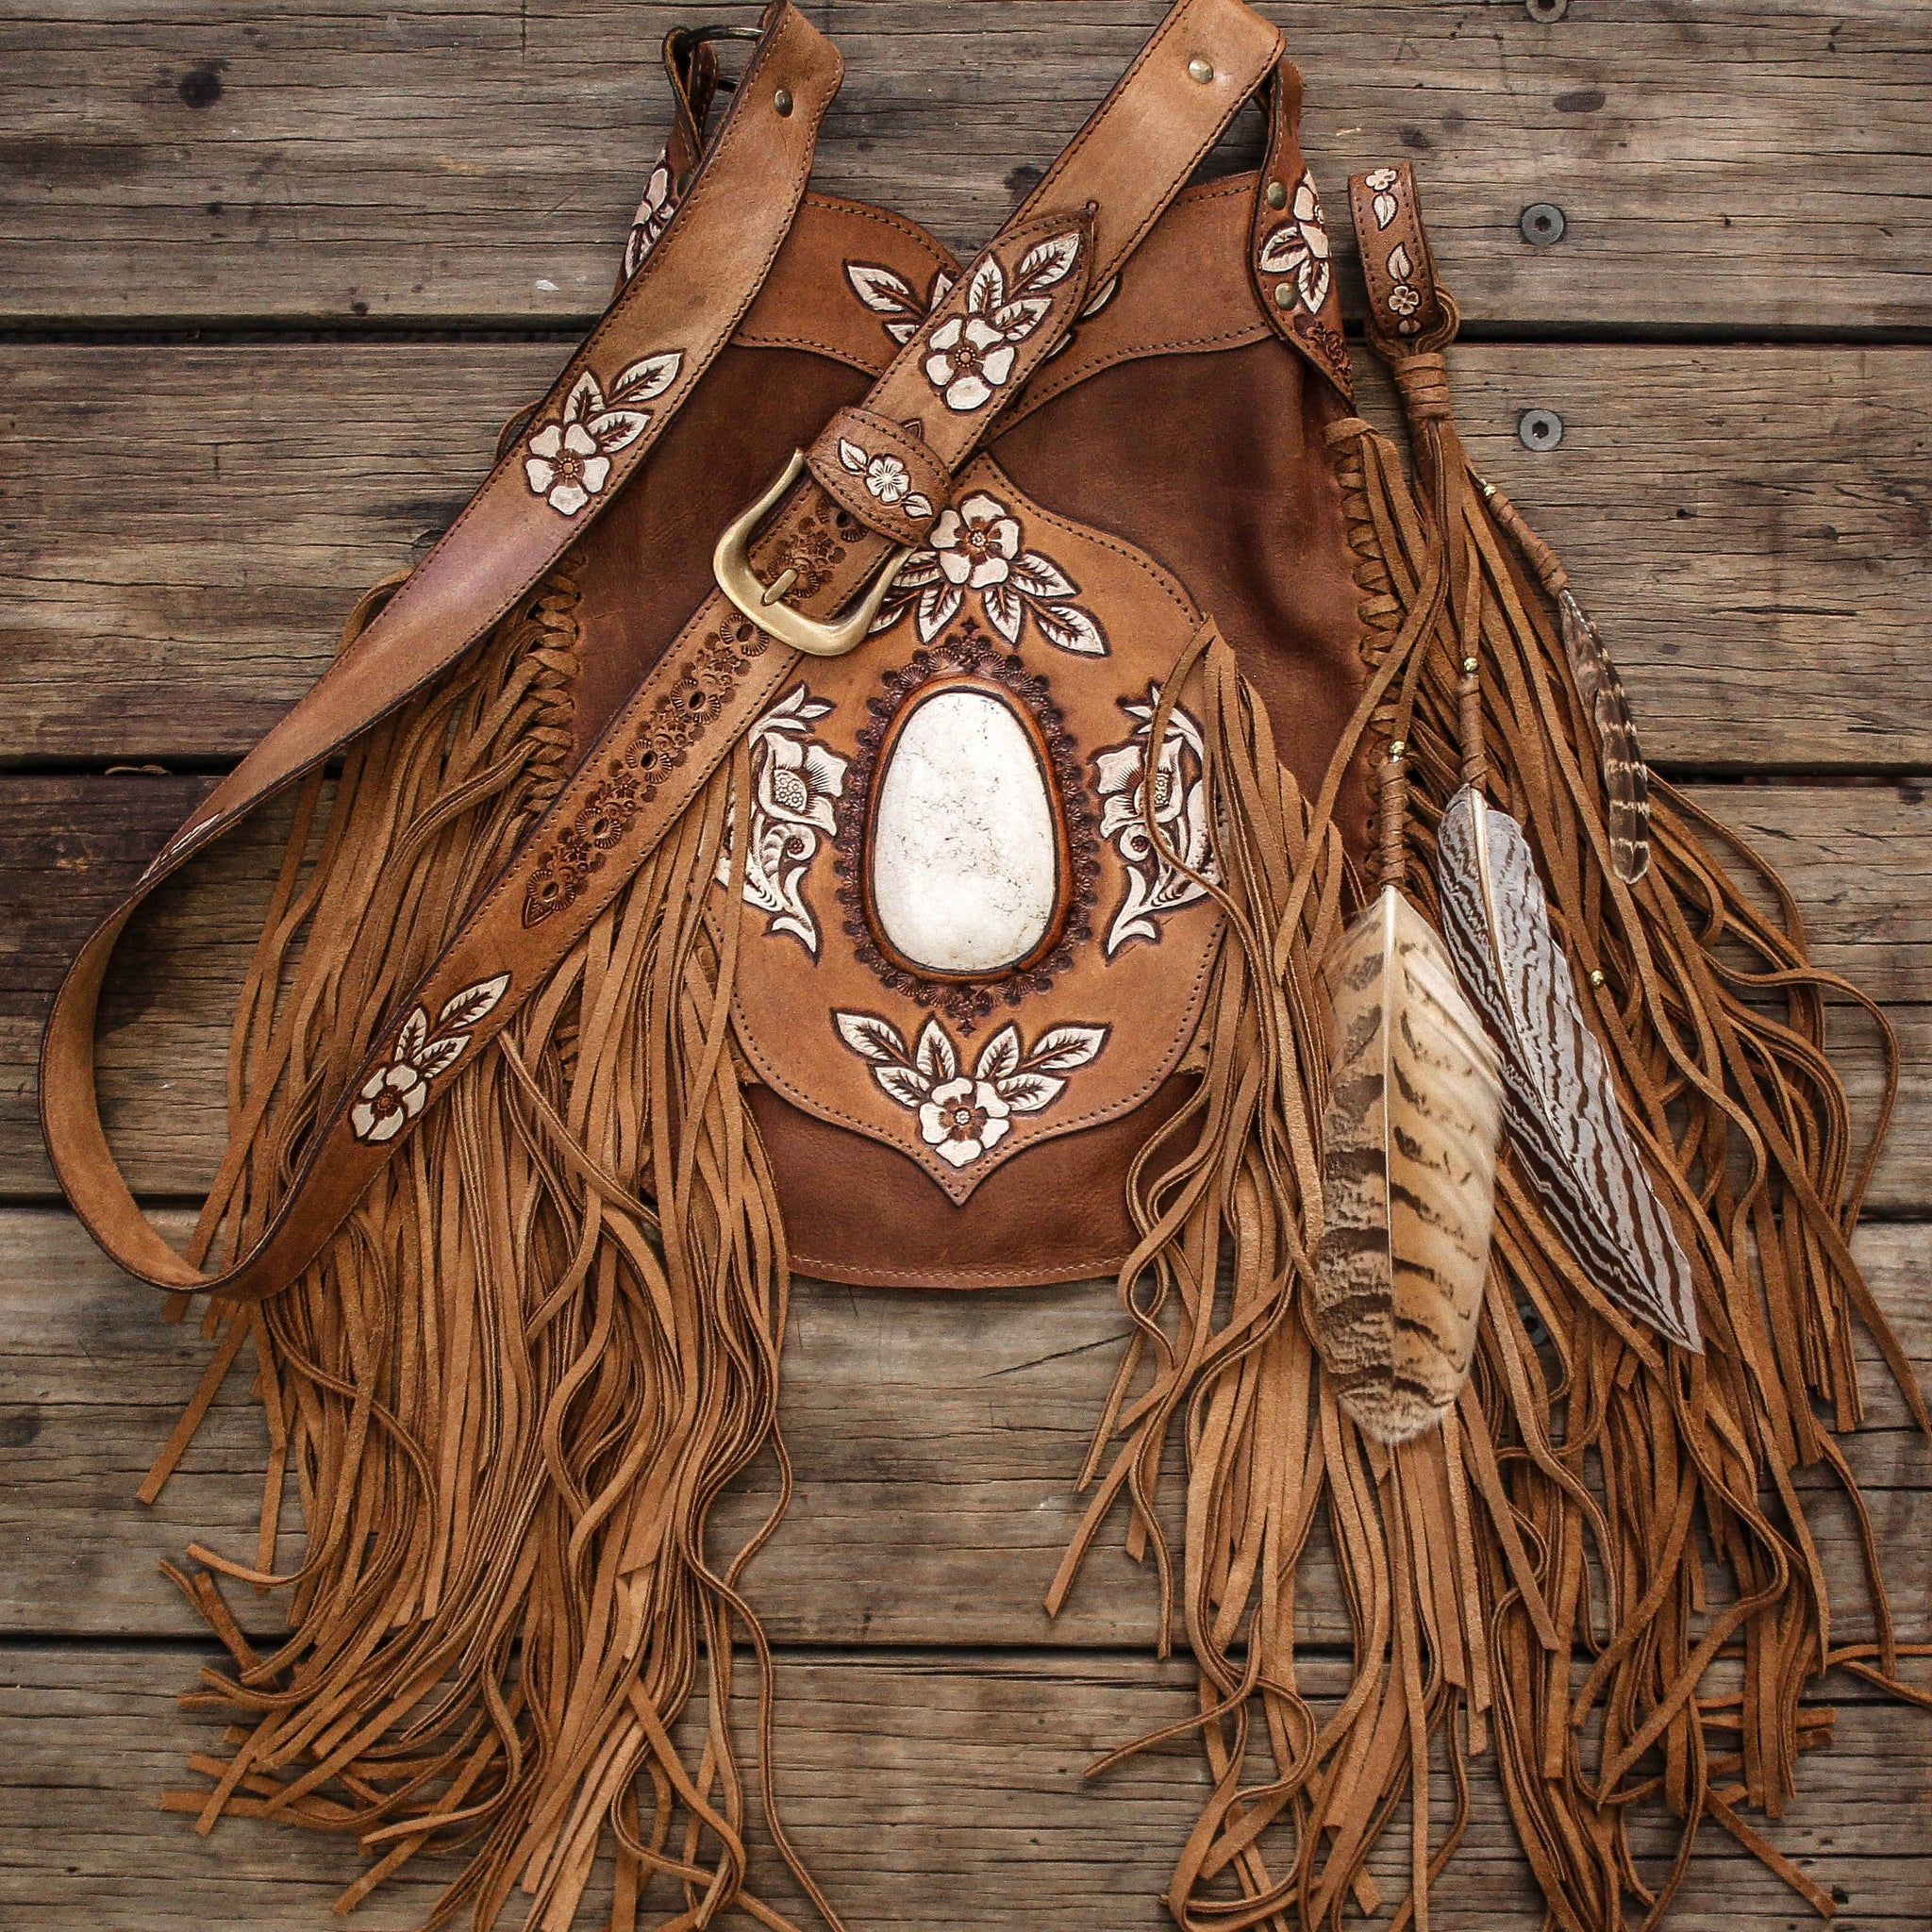 Hand painted Desert Angel Bag with Howlite in distressed tan leather.